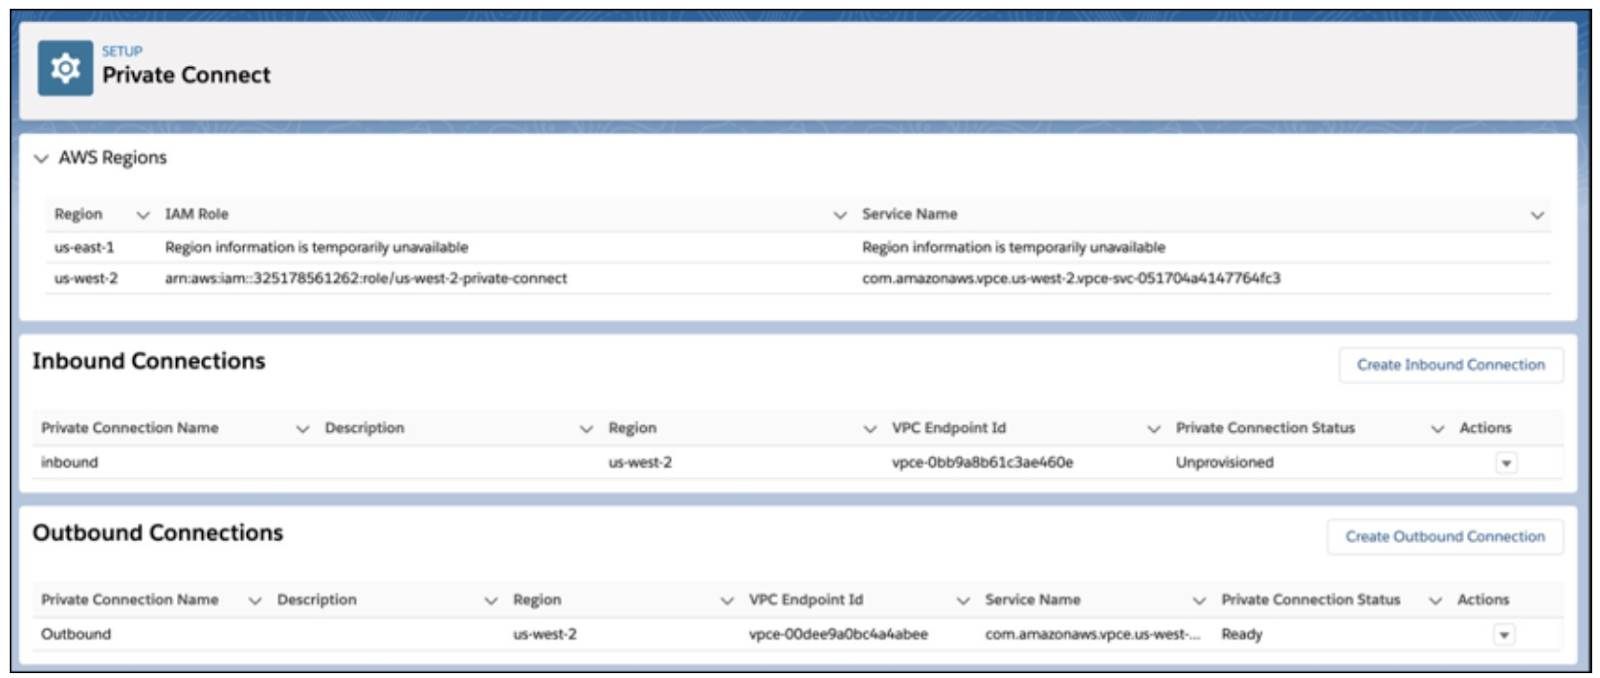 Private Connect Setup page in Salesforce